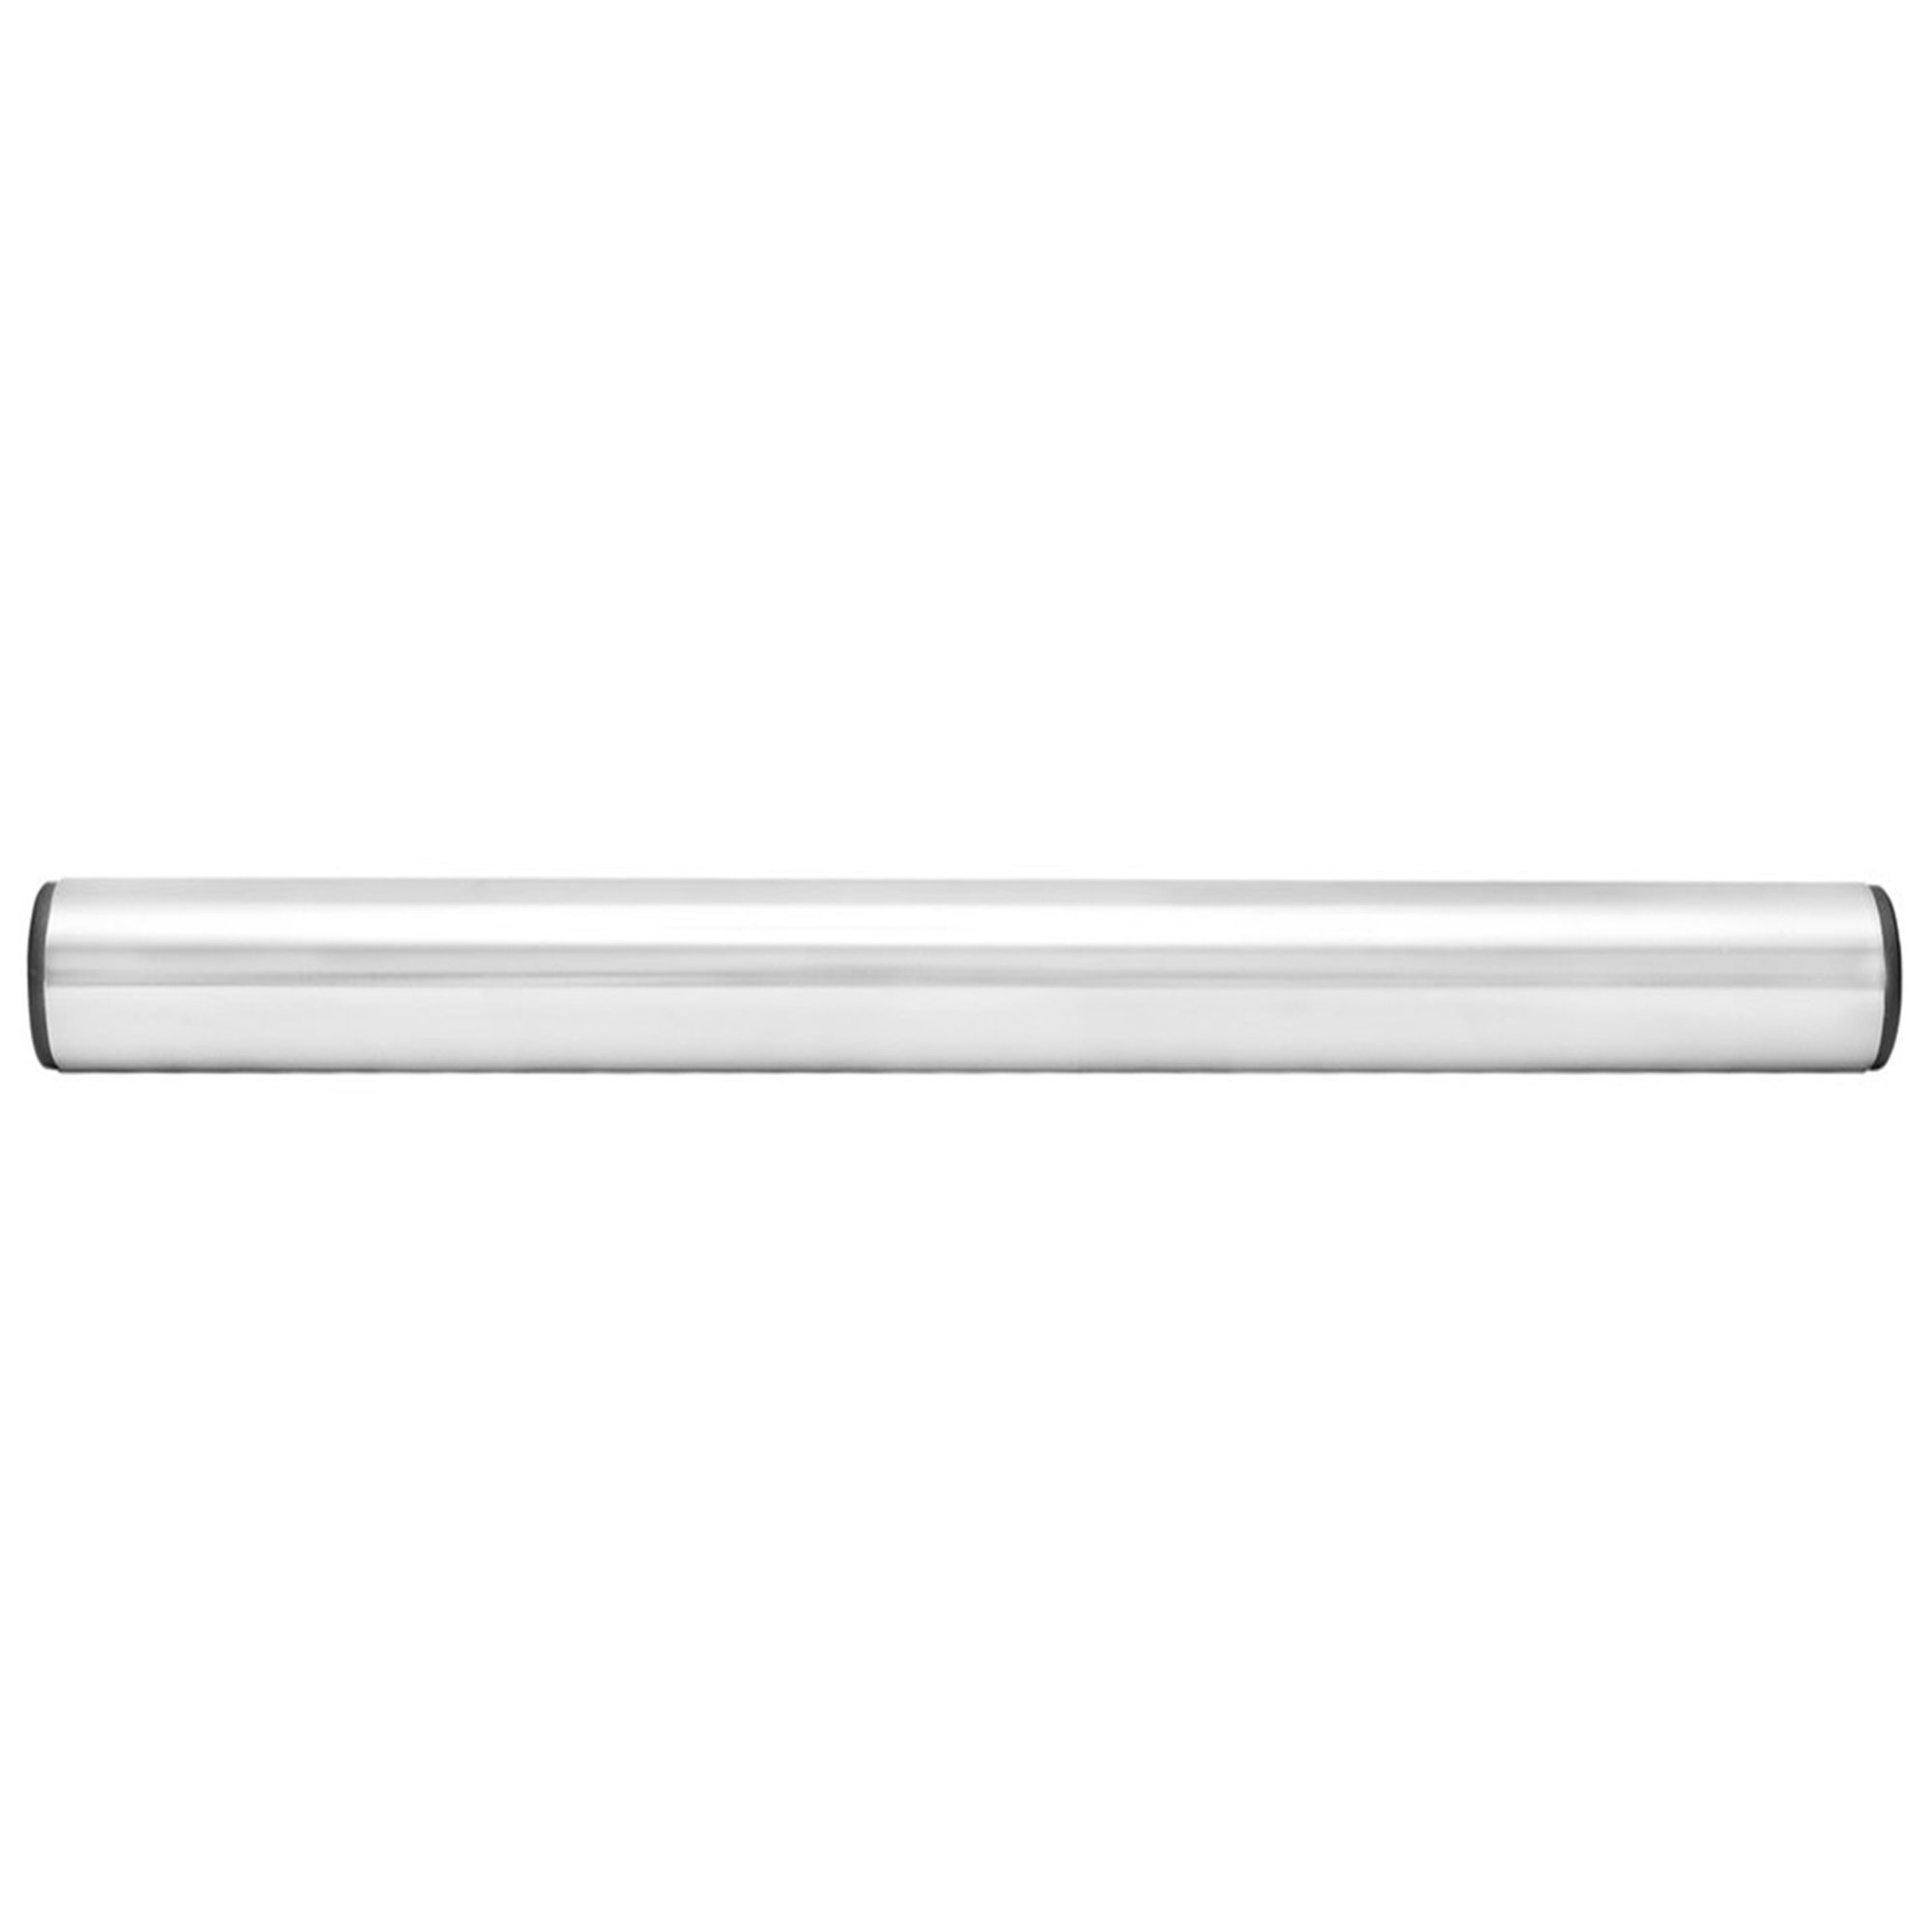 PME Stainless Steel Rolling Pin, 6'', Silver